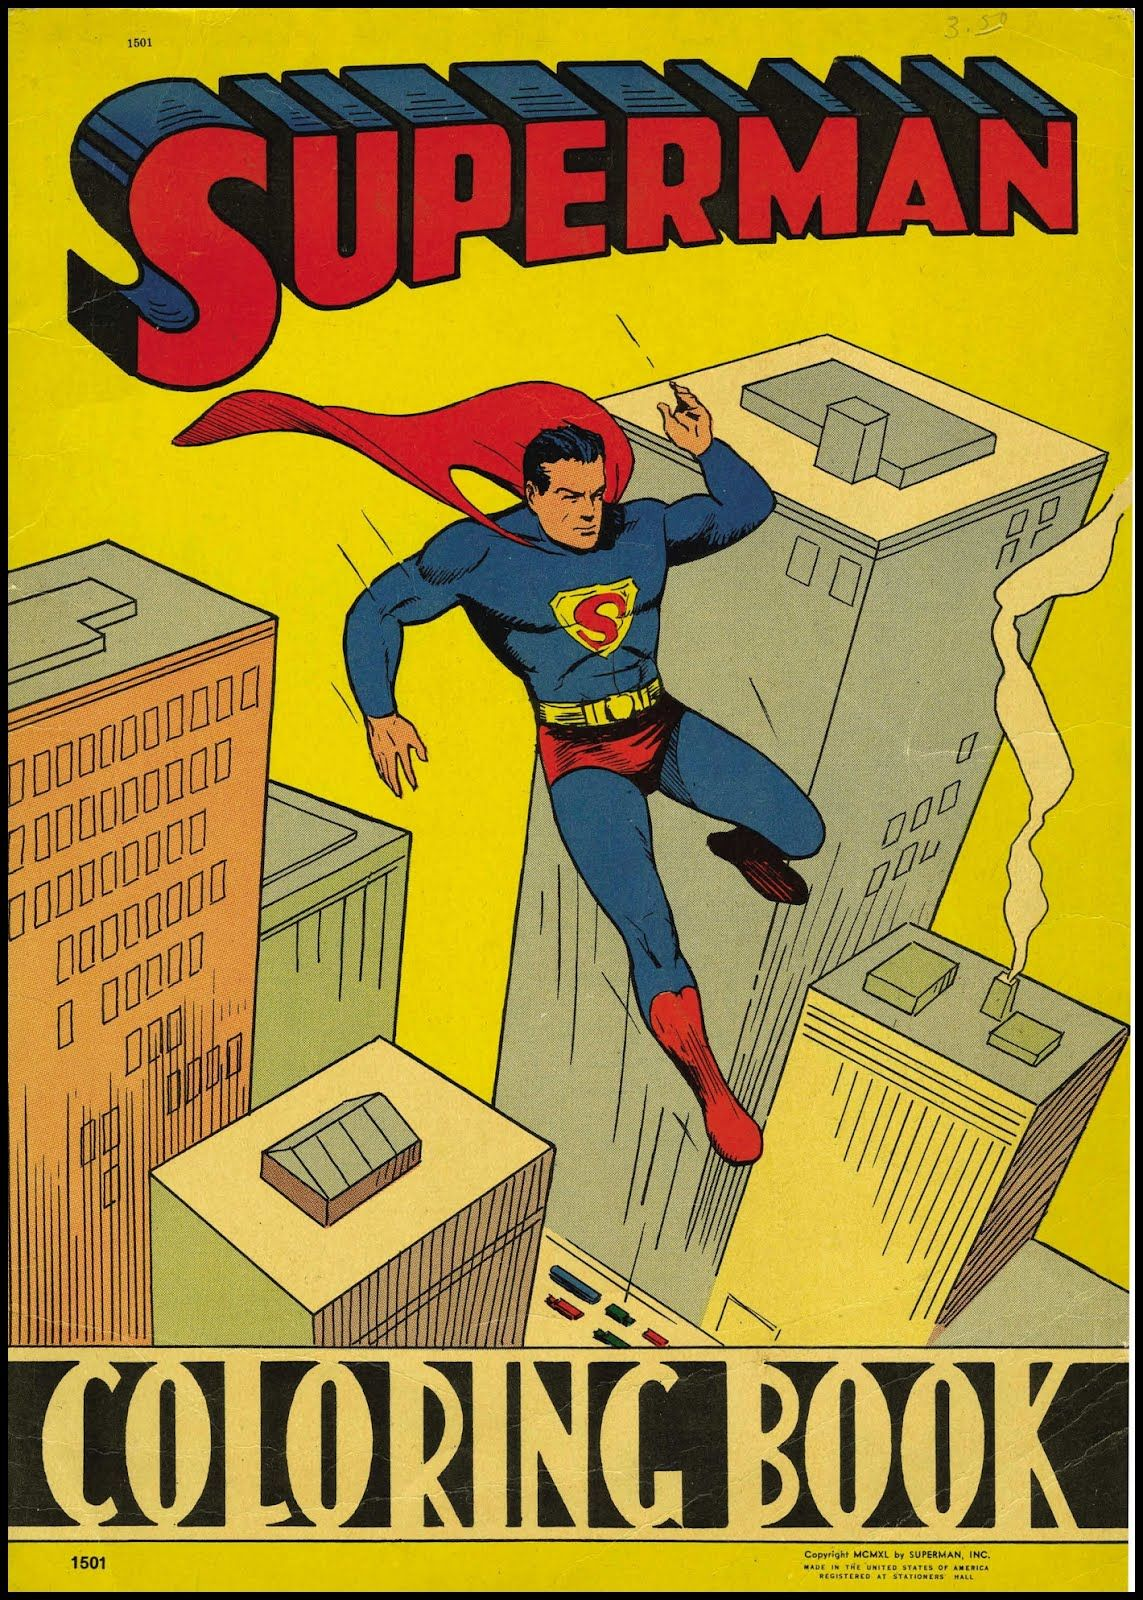 Superman Coloring Book, 1940. | Vintage art | Pinterest | Coloring ...